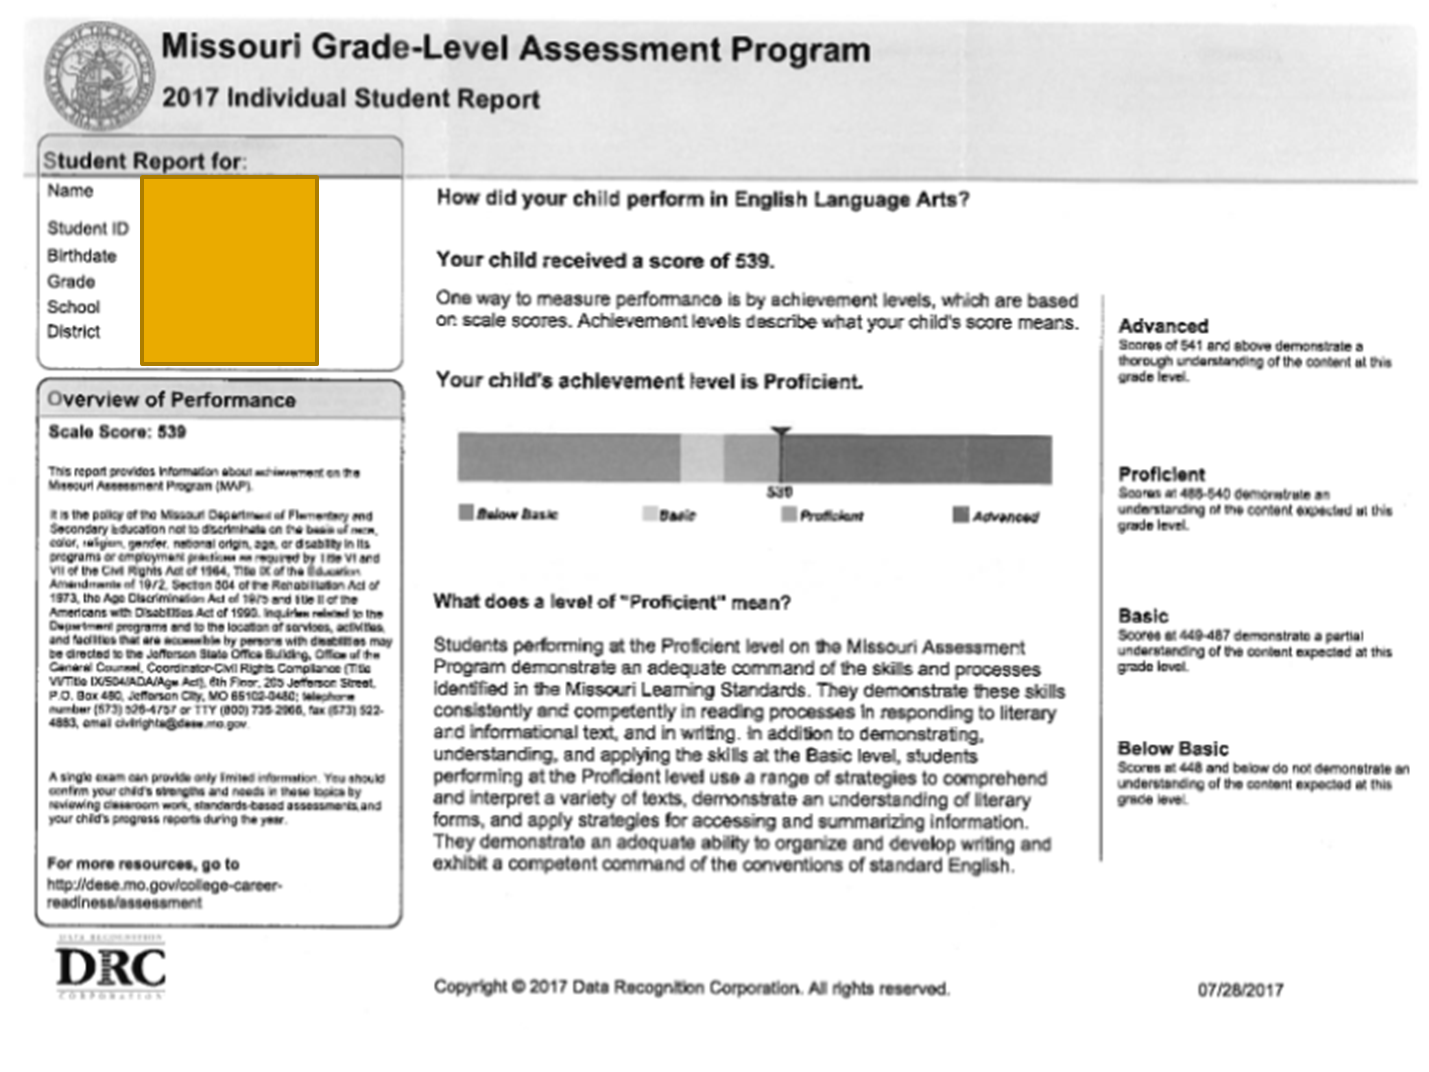 If We're Going to Administer Standardized Tests, Let's Make Them